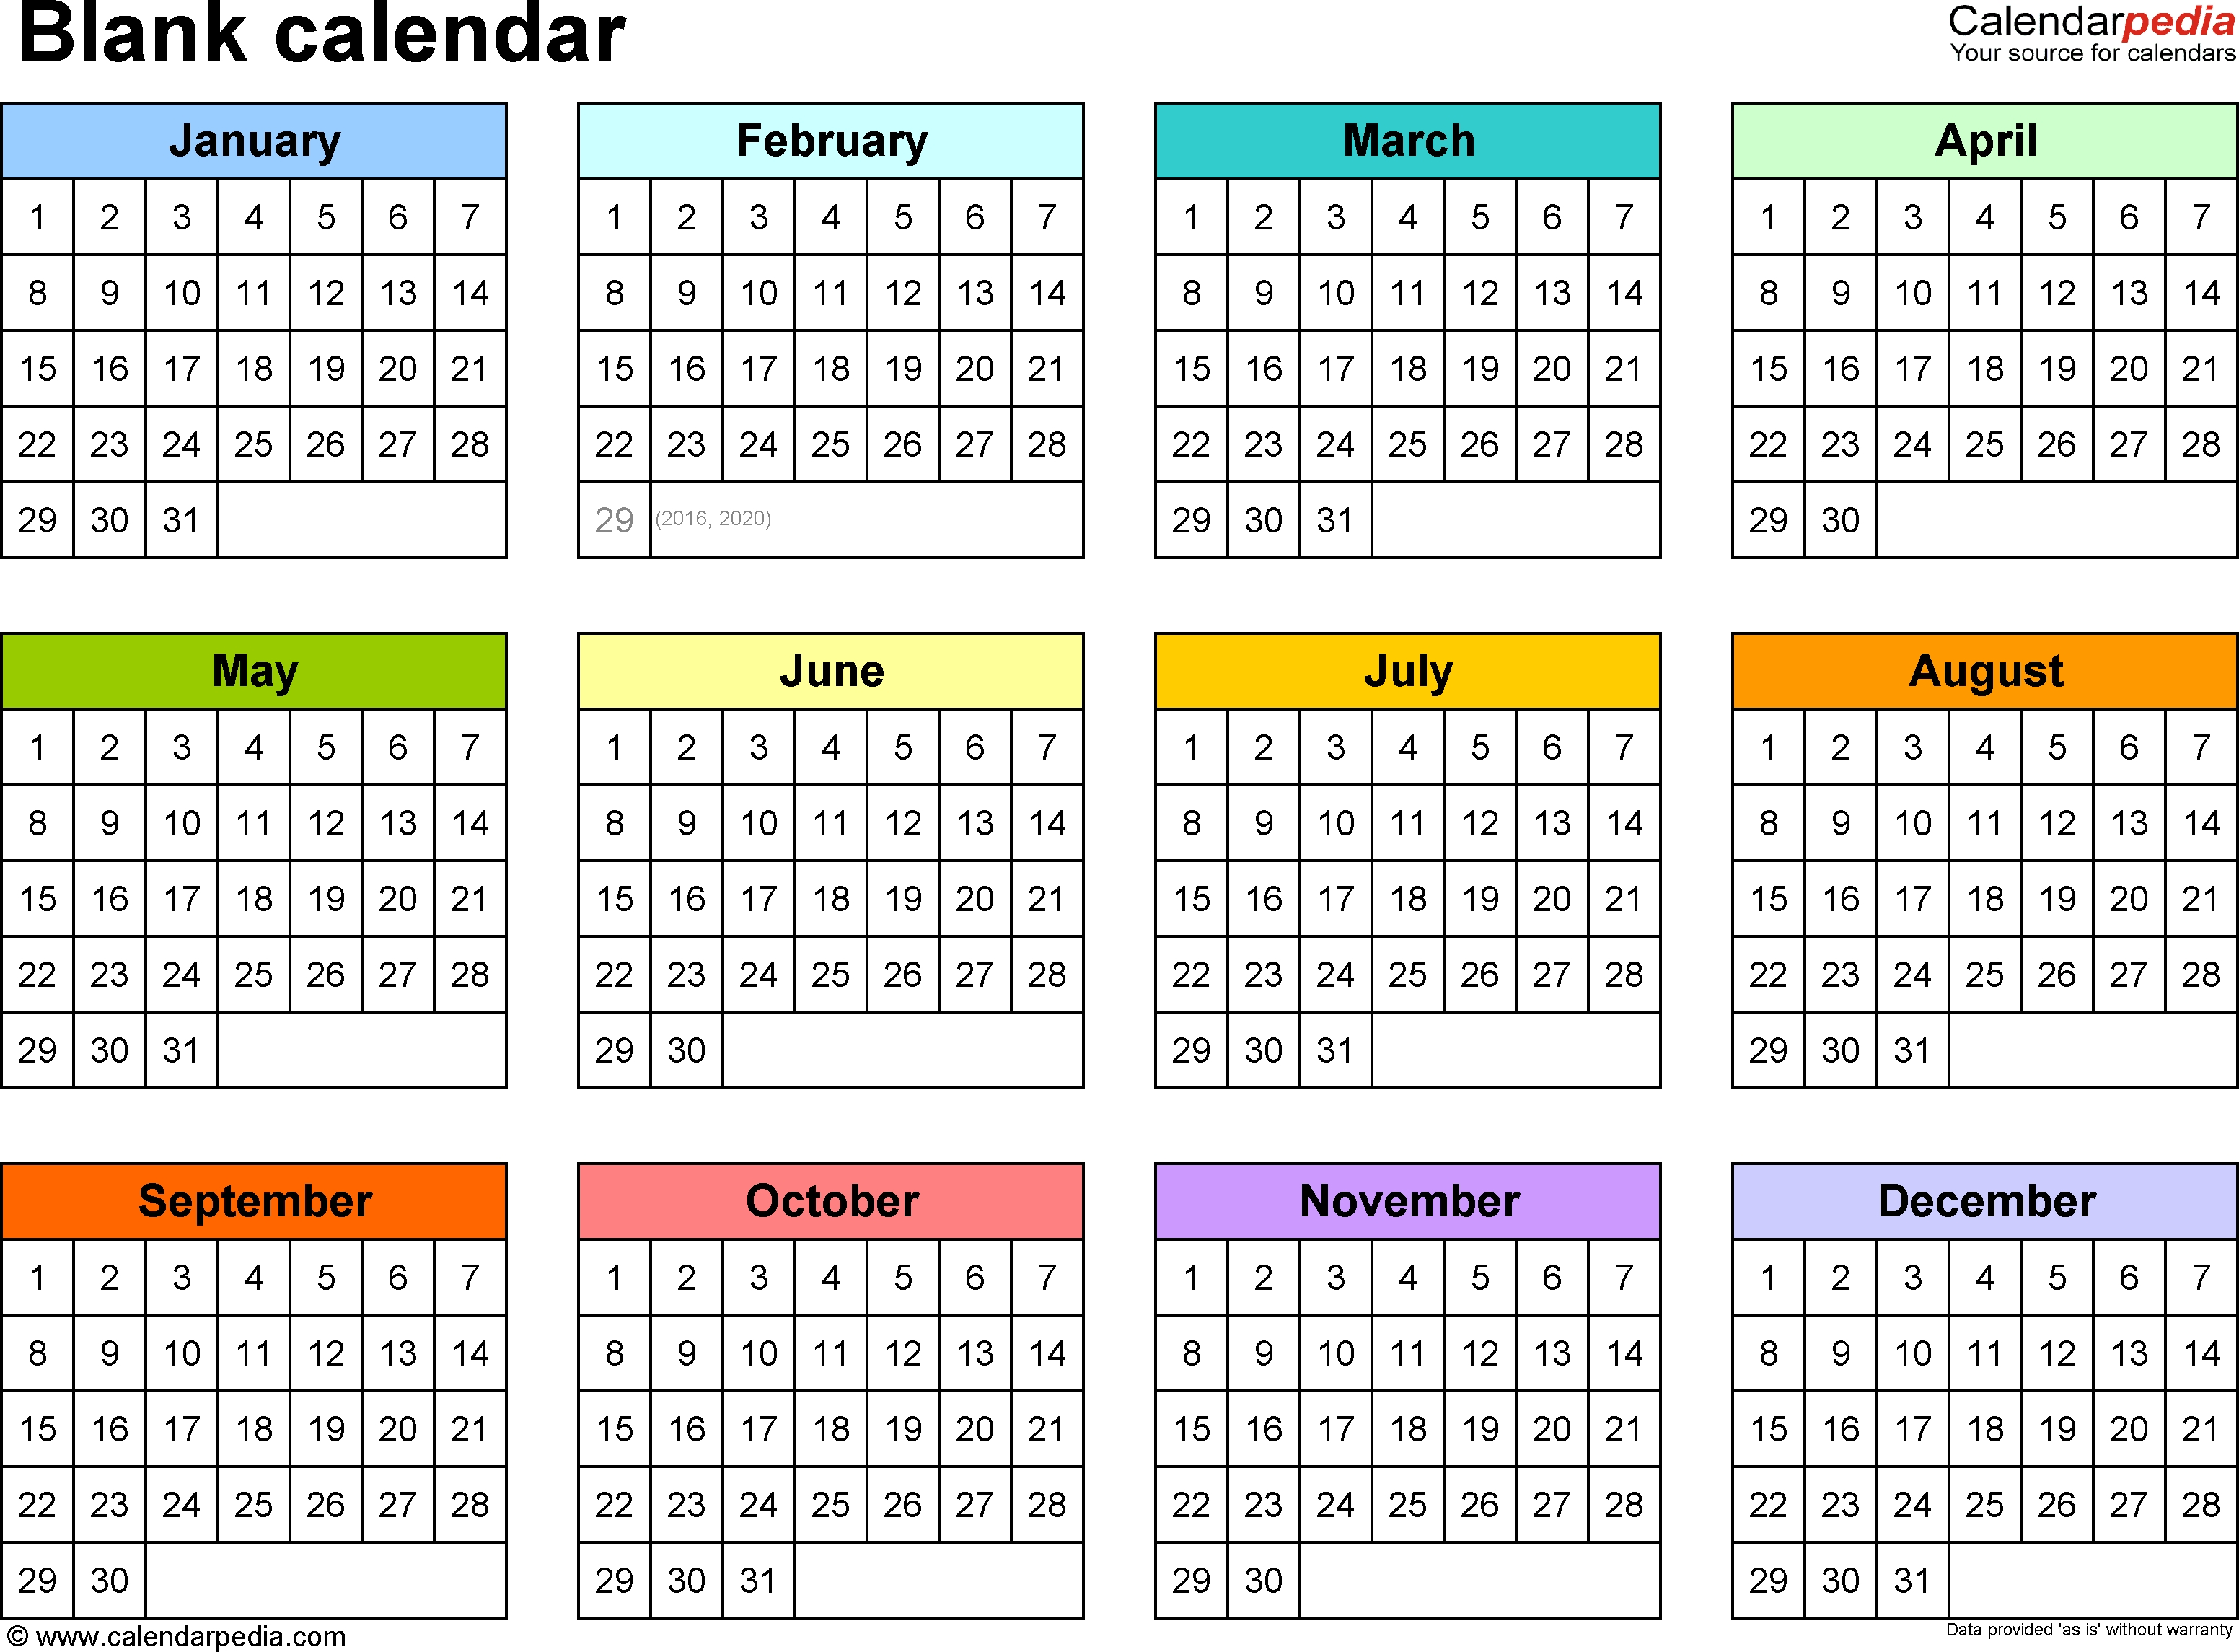 Blank Calendar - 9 Free Printable Microsoft Word Templates within Monthly Calendar On One Page